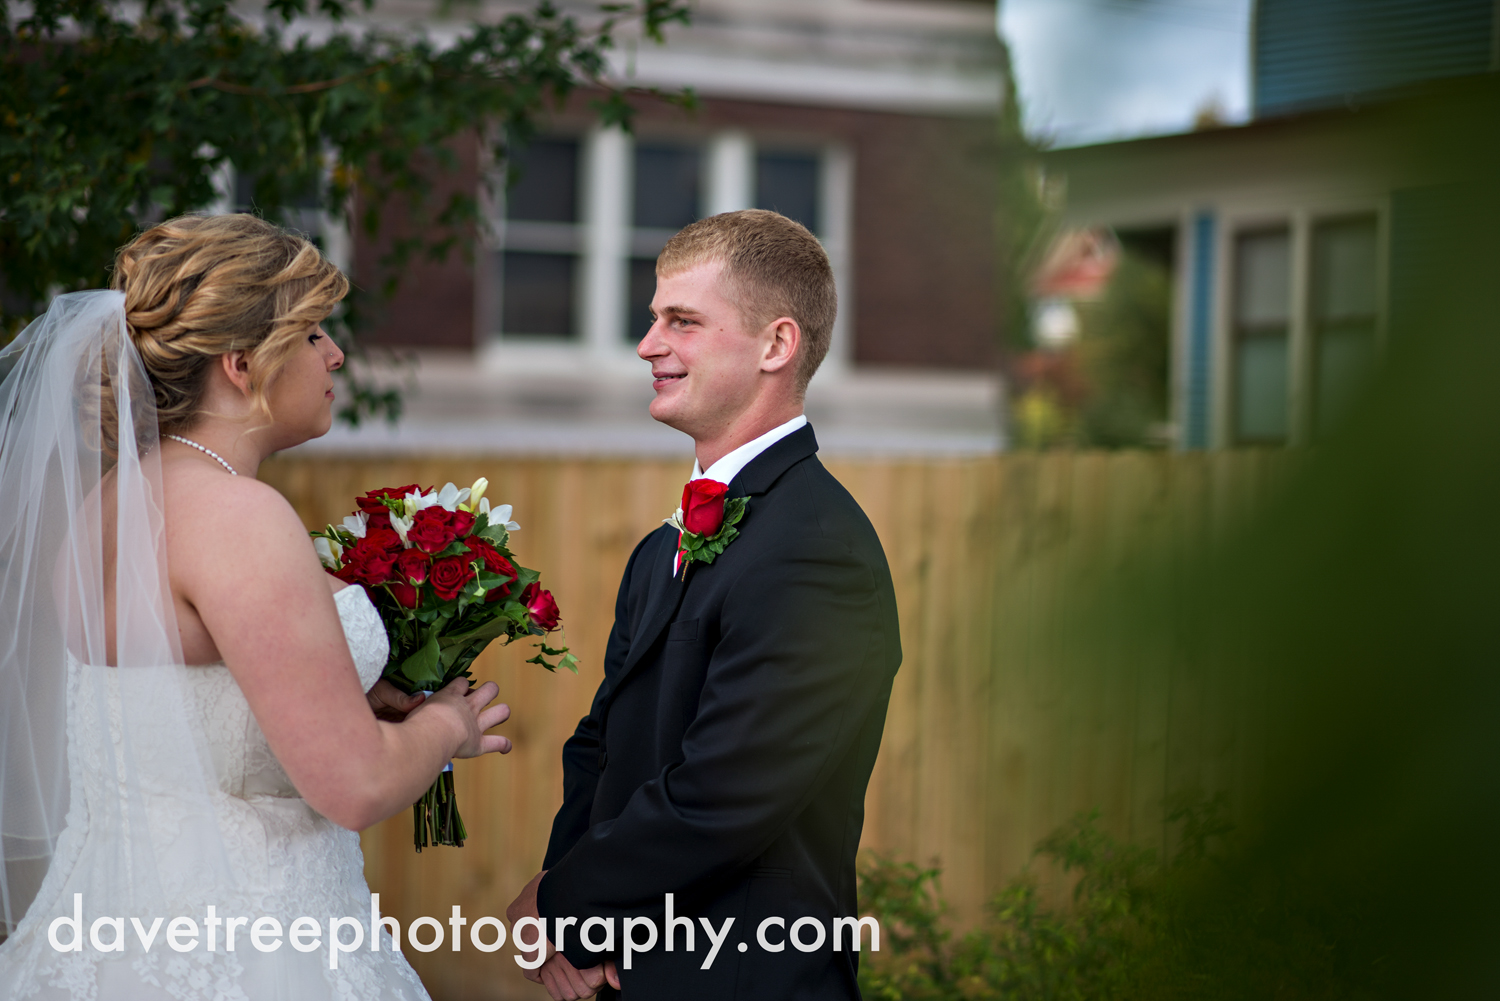 holland_wedding_photographer_75.jpg